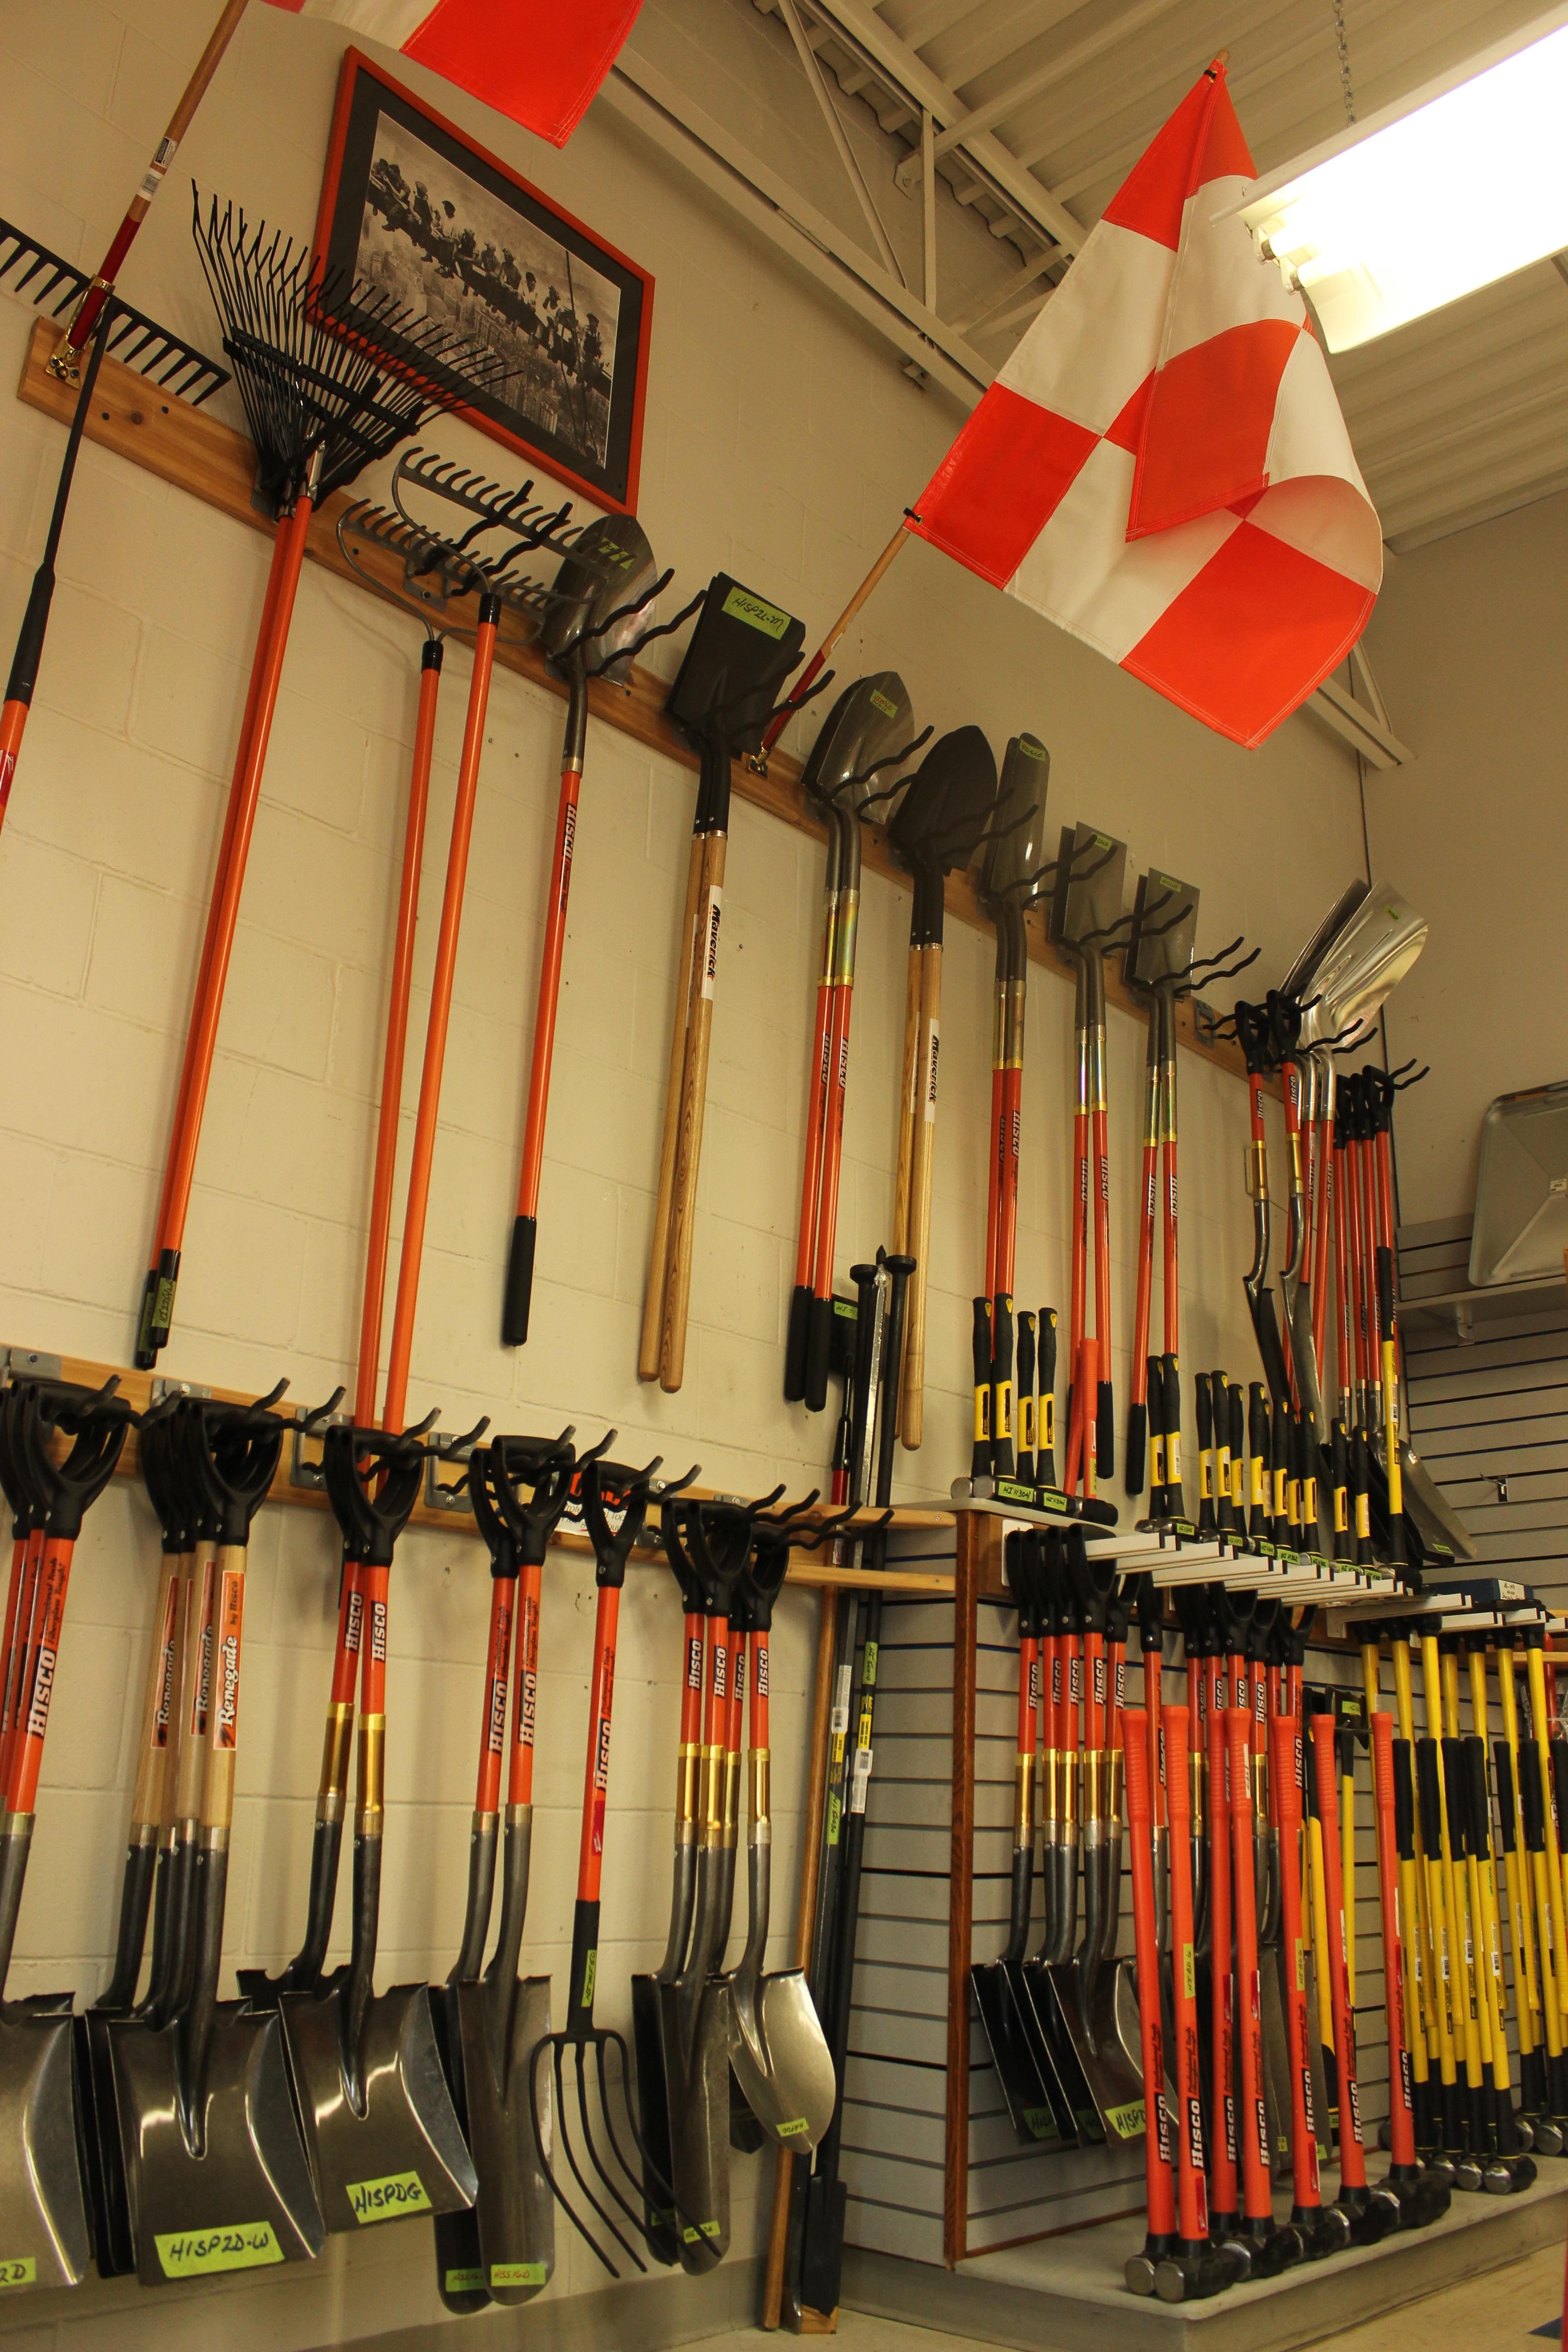 Shovels, Rakes, and Landscaping tools in Waukesha